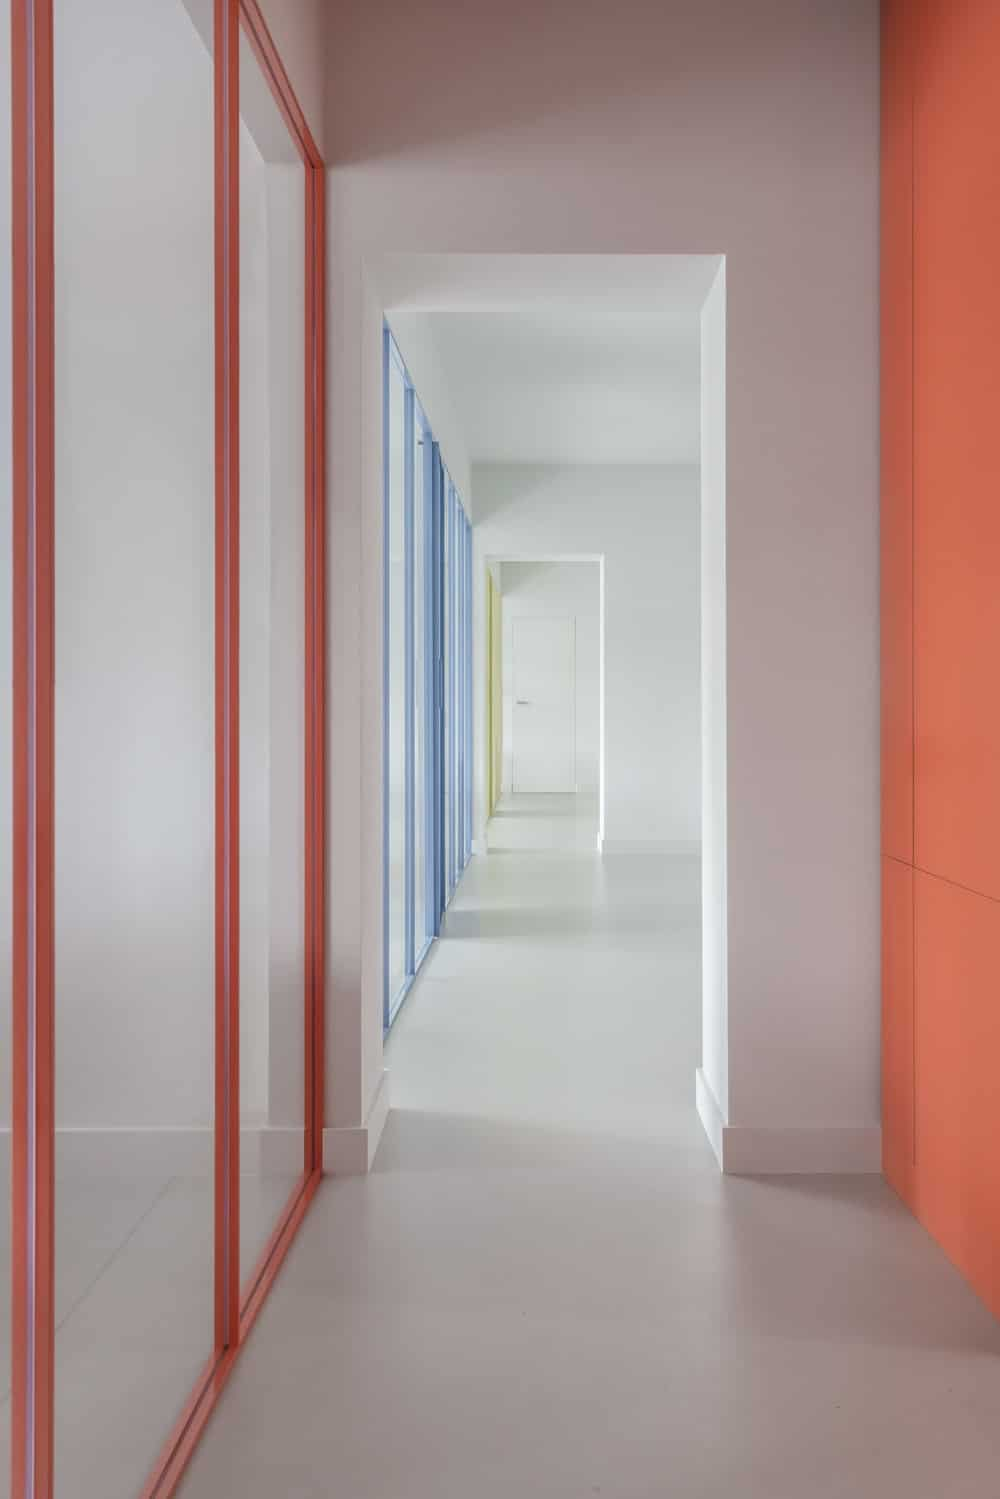 This is a hallway with glass walls on one side that has colorful frames that stand out against the bright tones.